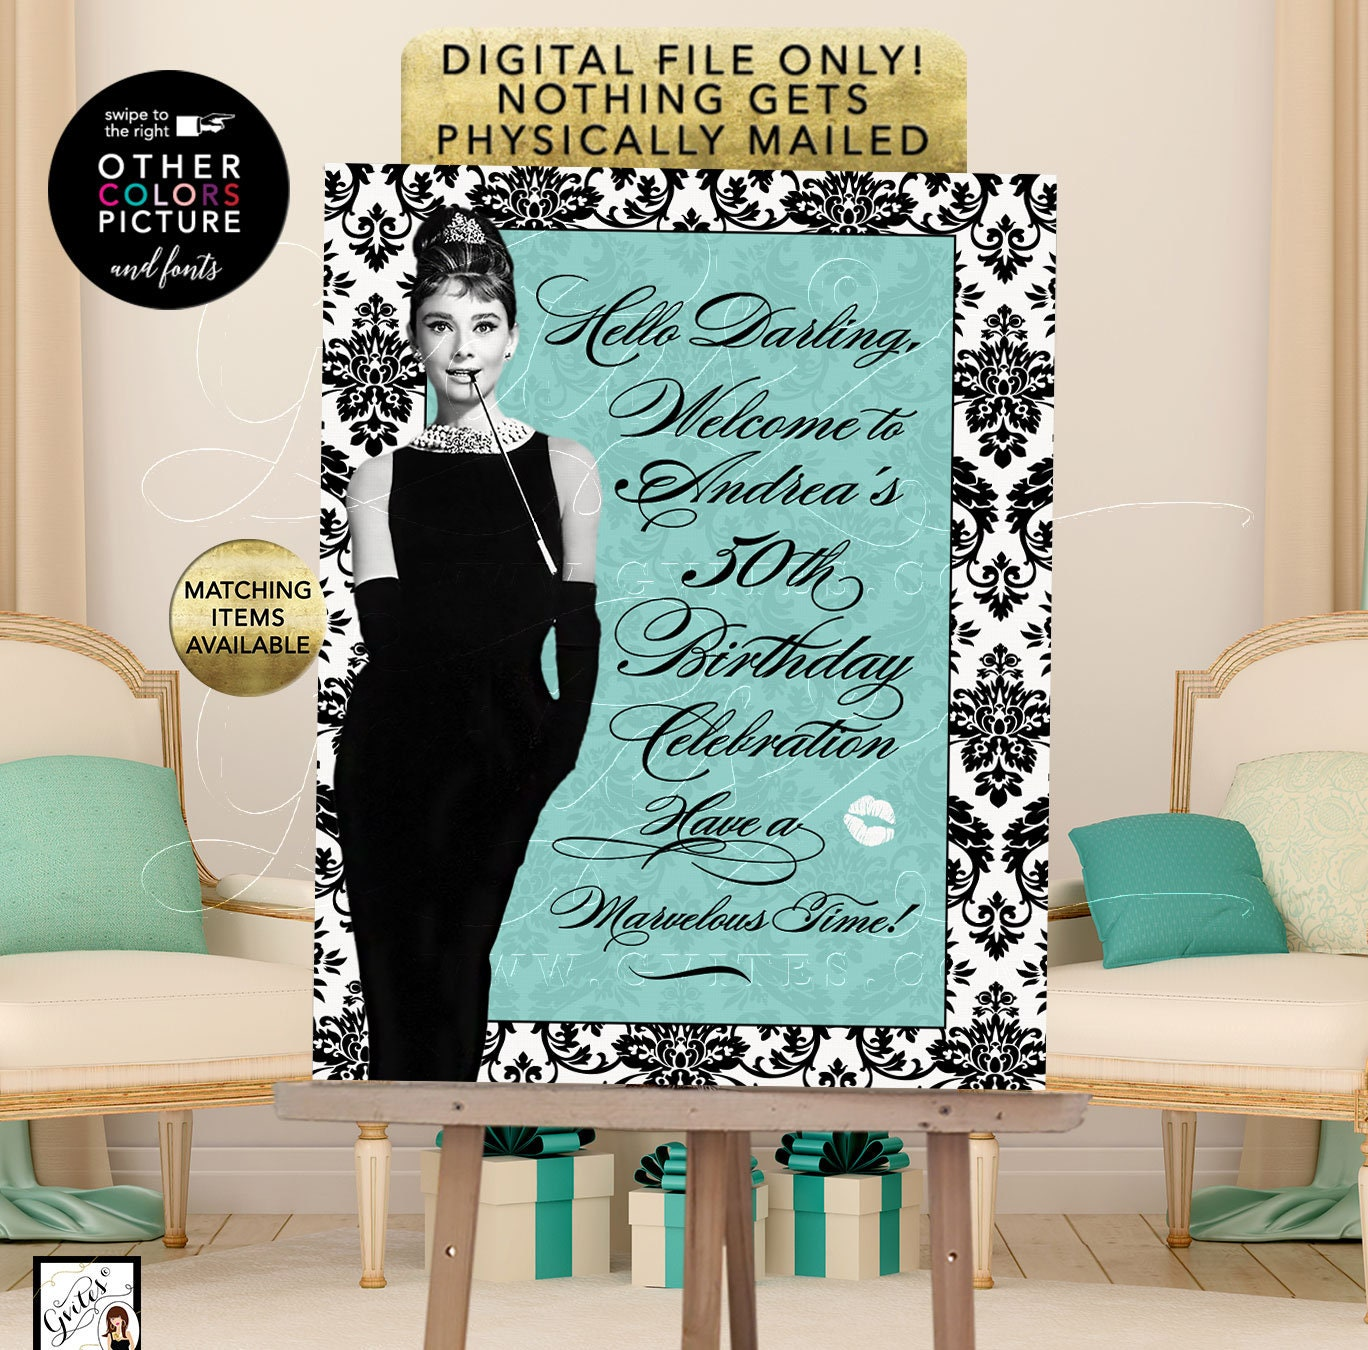 photograph relating to 50th Birthday Signs Printable named Audrey Hepburn 50th Birthday Indicators Customizable Words and phrases/ Fonts